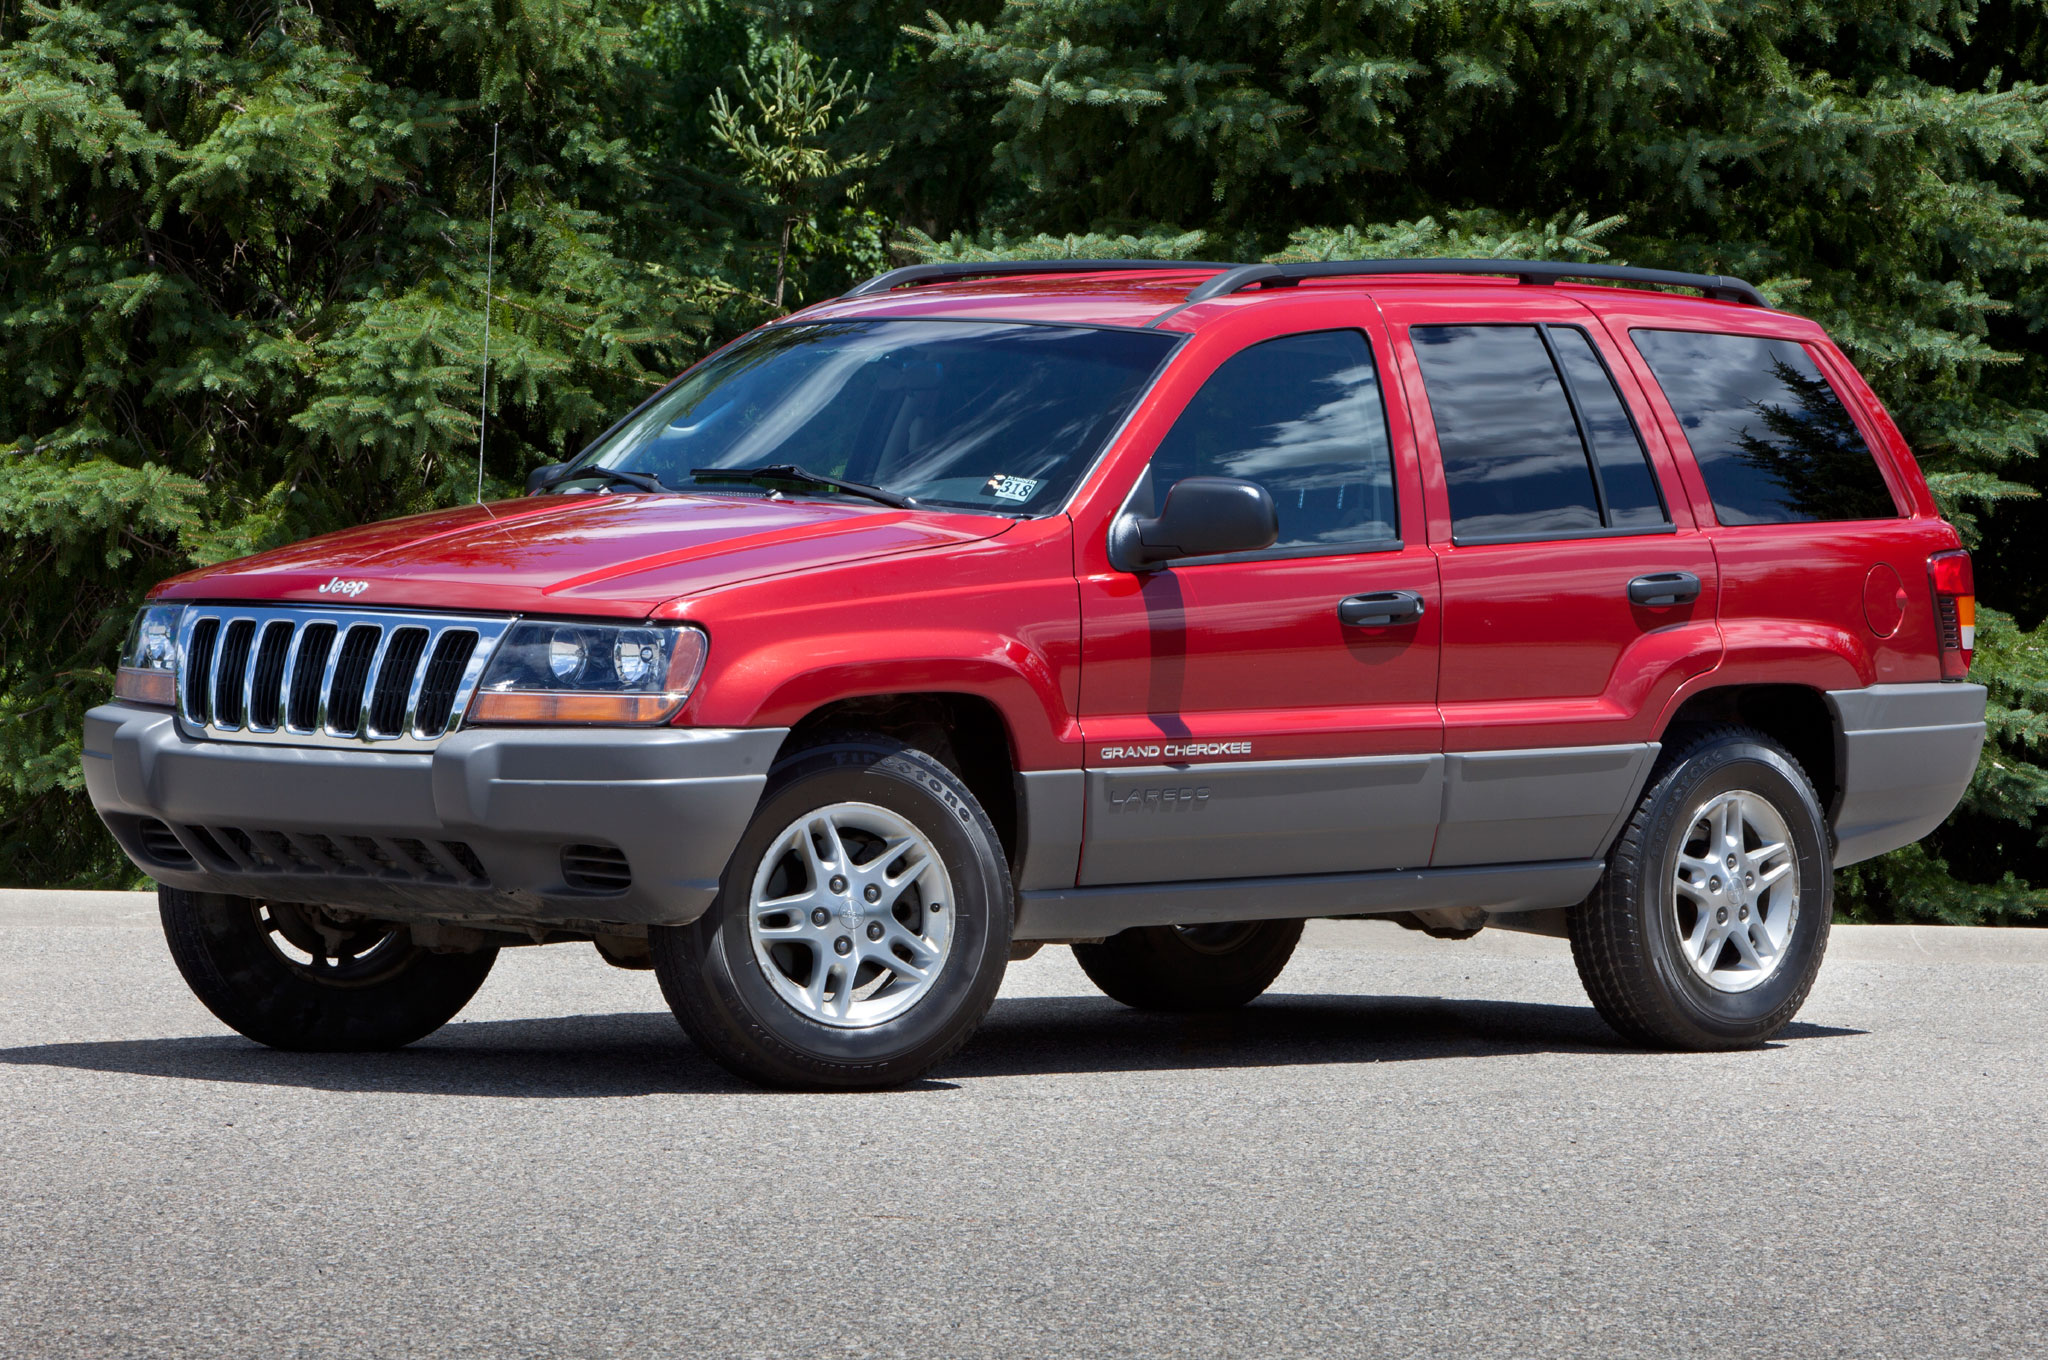 2004 Jeep Grand Cherokee. Size: 739 Kb; Resolution: 2048x1360; Type: Link:  File Src ...